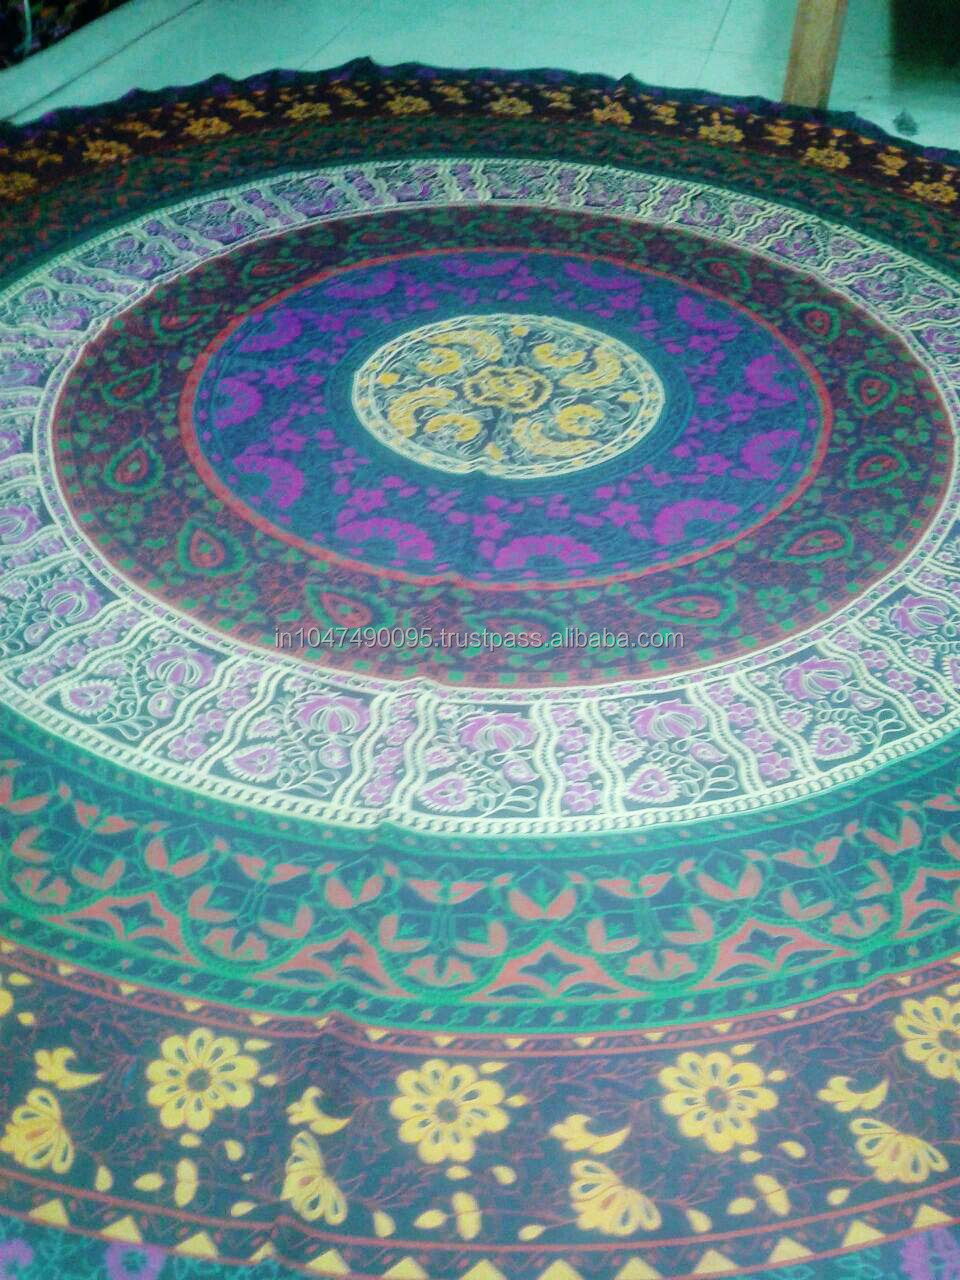 Mandala Round Beach Throw Tapestry Table Runner Bed Sheet